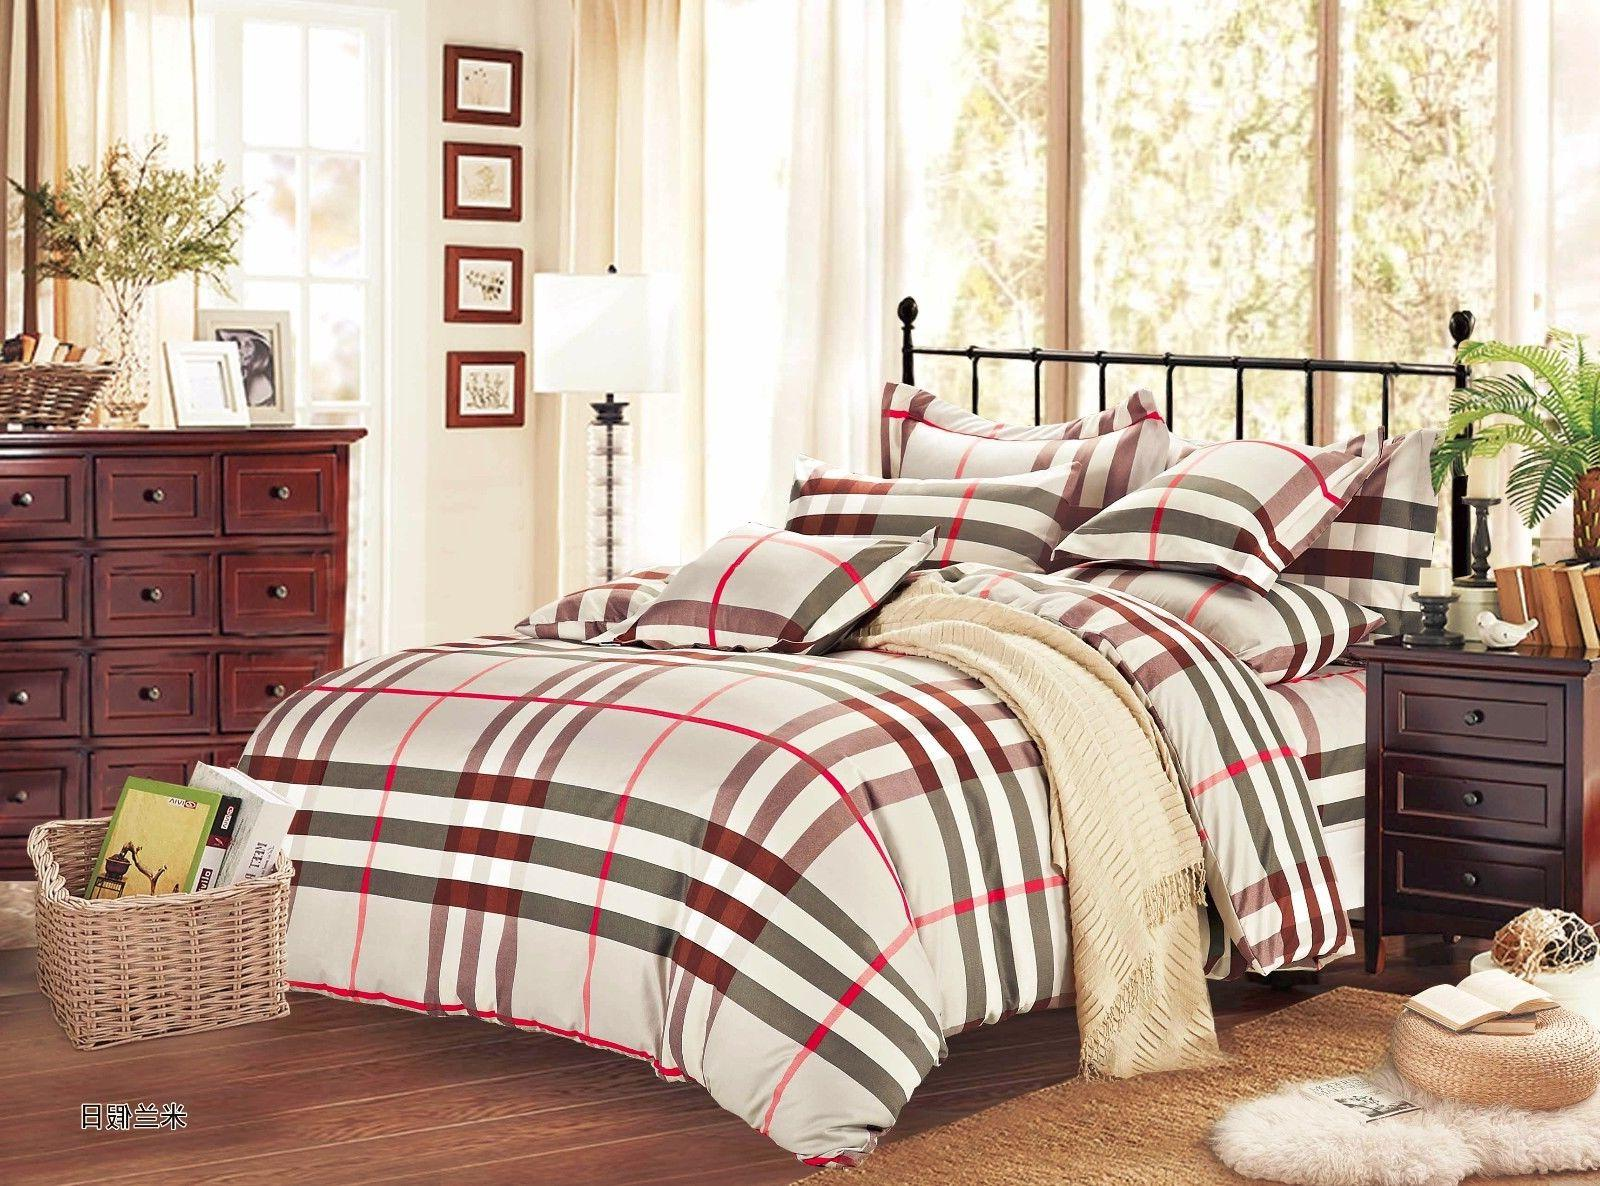 plaid microfiber 3pc bedding Set:1 Duvet Cover & 2 Pillow Sh